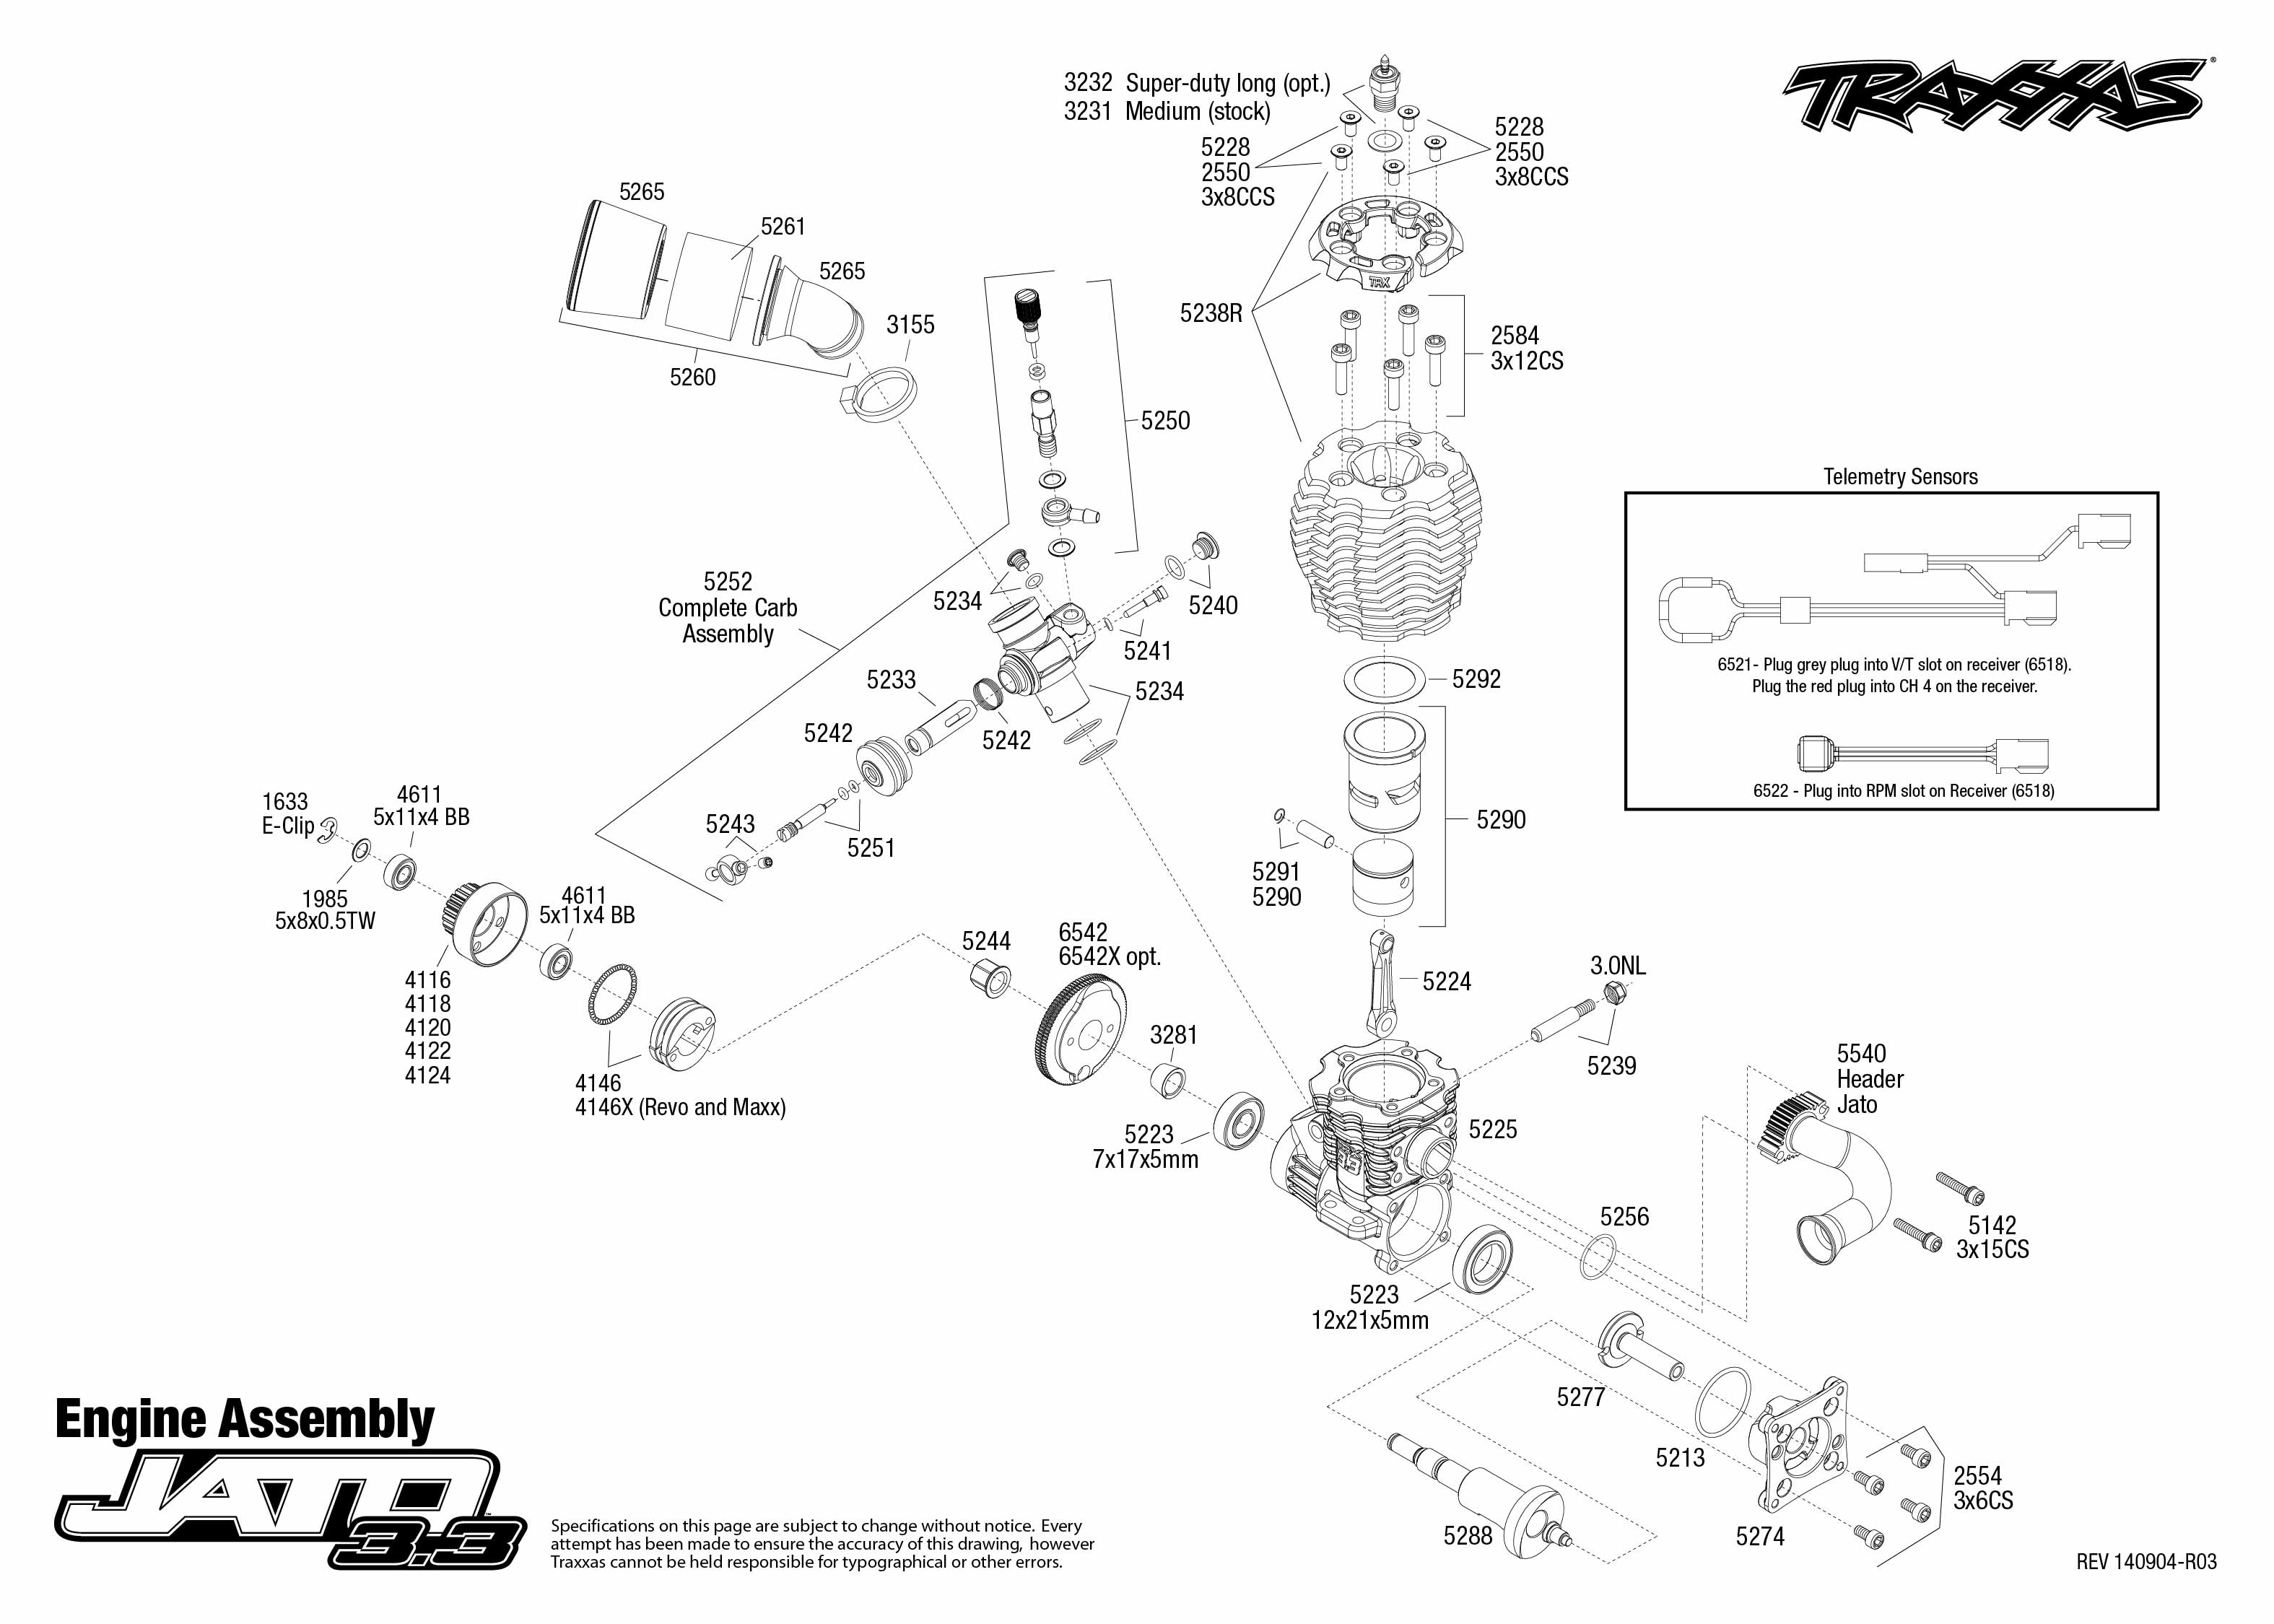 5507 engine exploded view (jato 3.3 w/ tqi 2.4ghz radio ... traxxas 3 3 engine diagram chrysler 3 3 v6 engine diagram #1